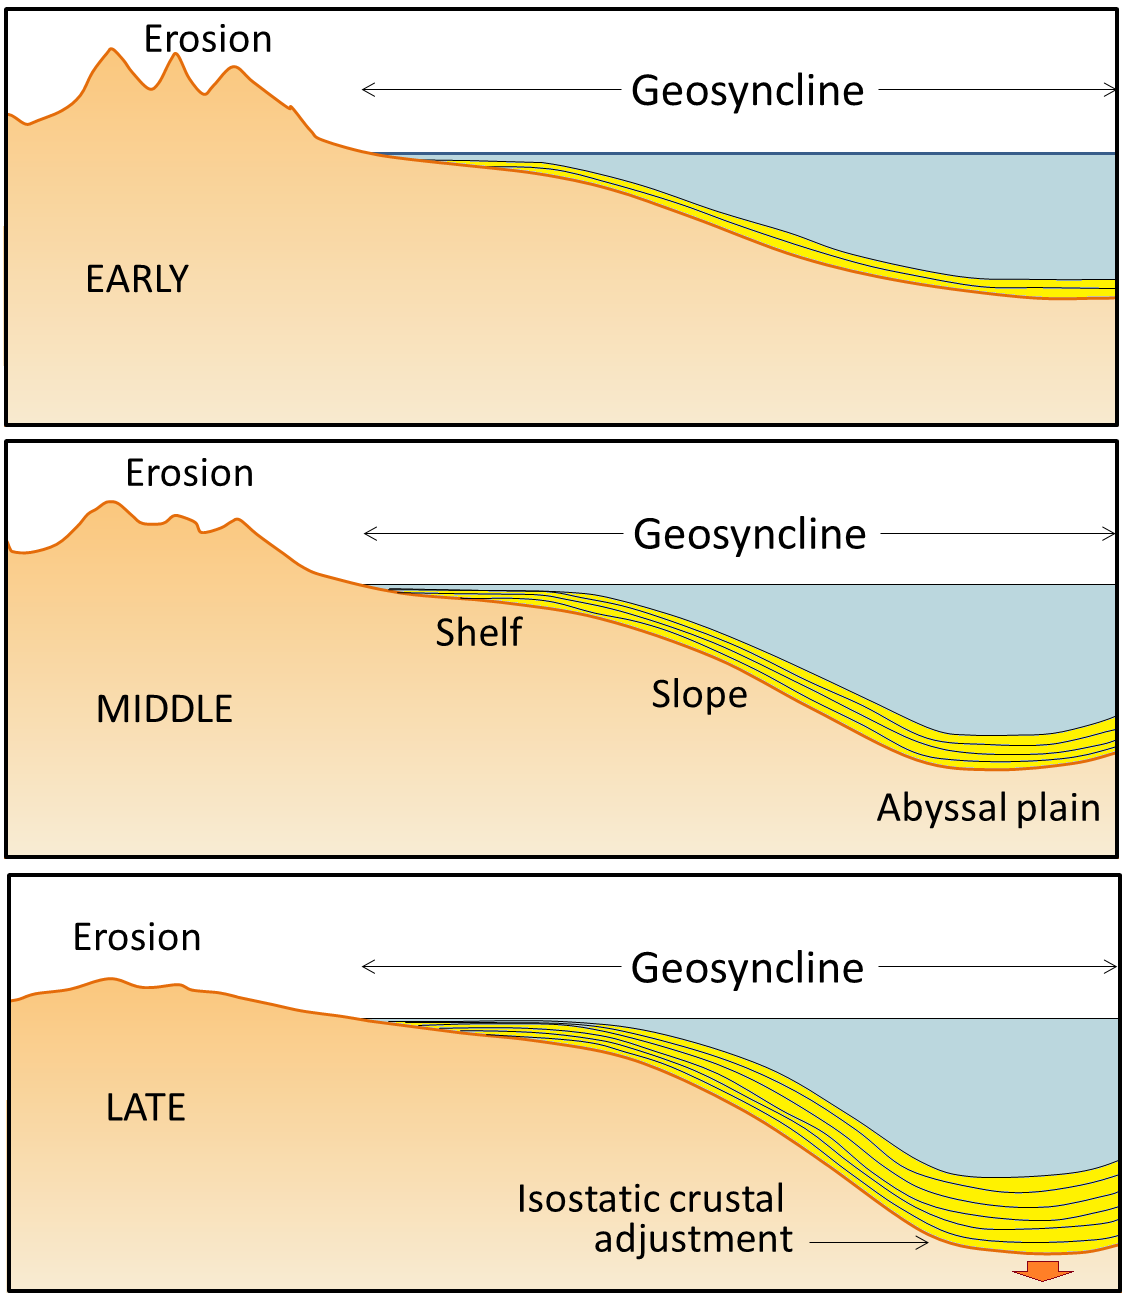 102 global geological models of the early 20th century physical note that a geosyncline is not related to a syncline which is a downward fold in sedimentary rocks se pooptronica Images